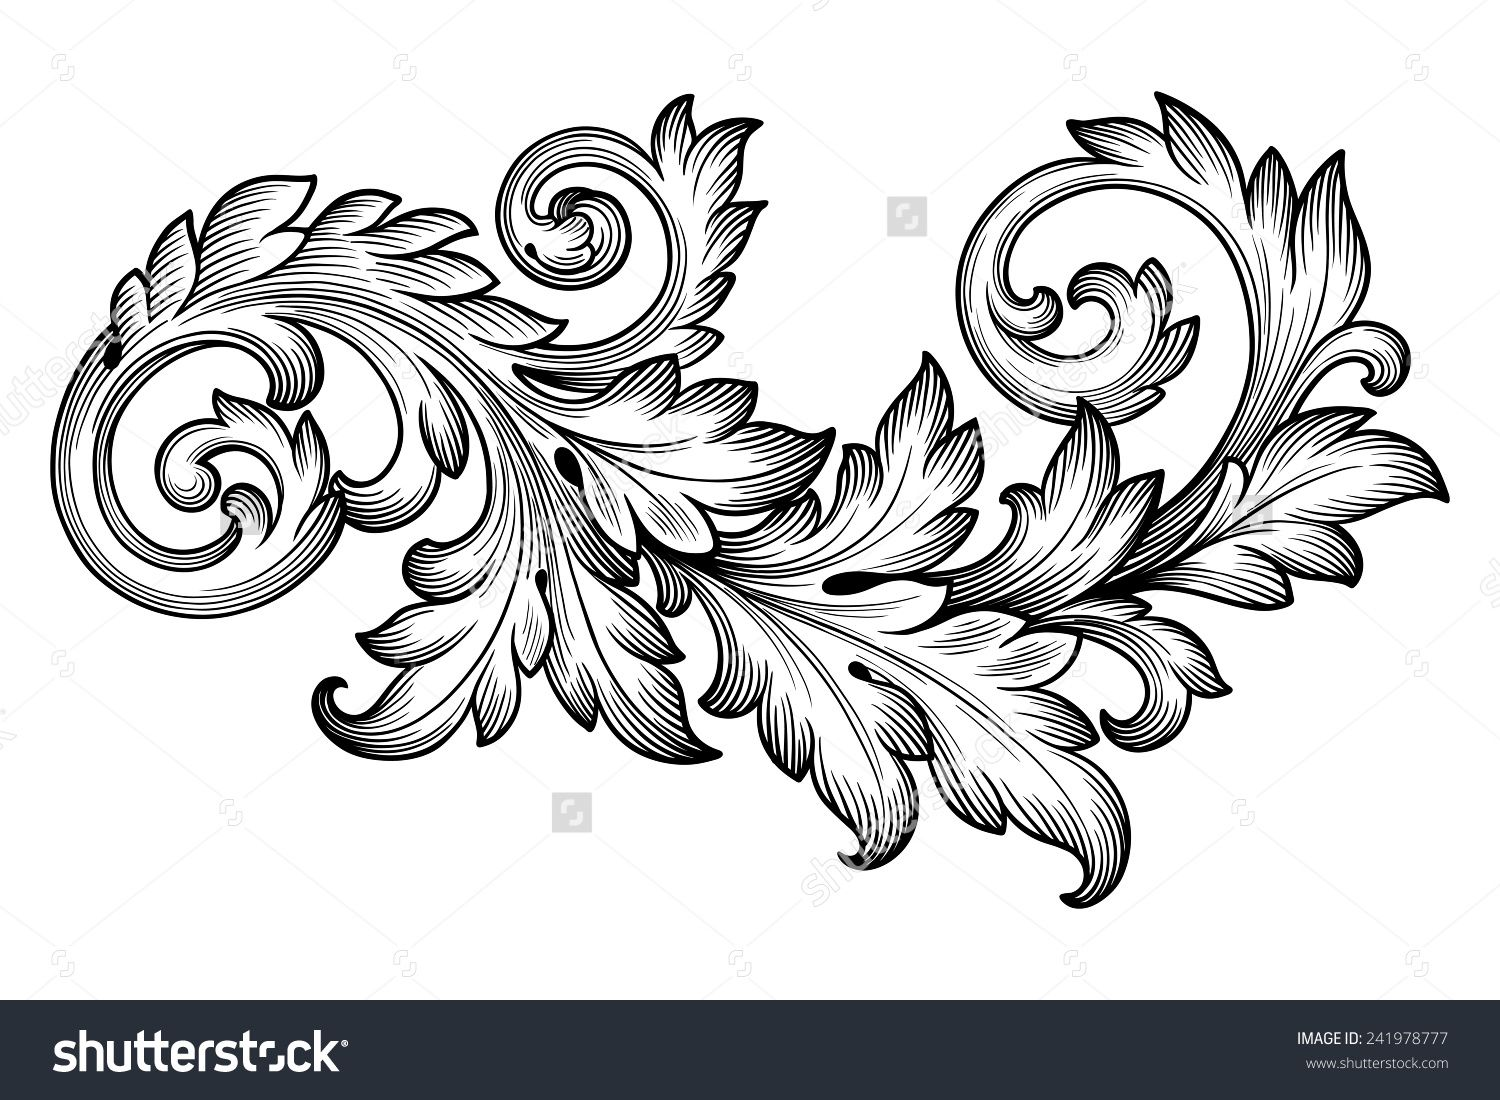 Stock vector vintage baroque frame scroll ornament